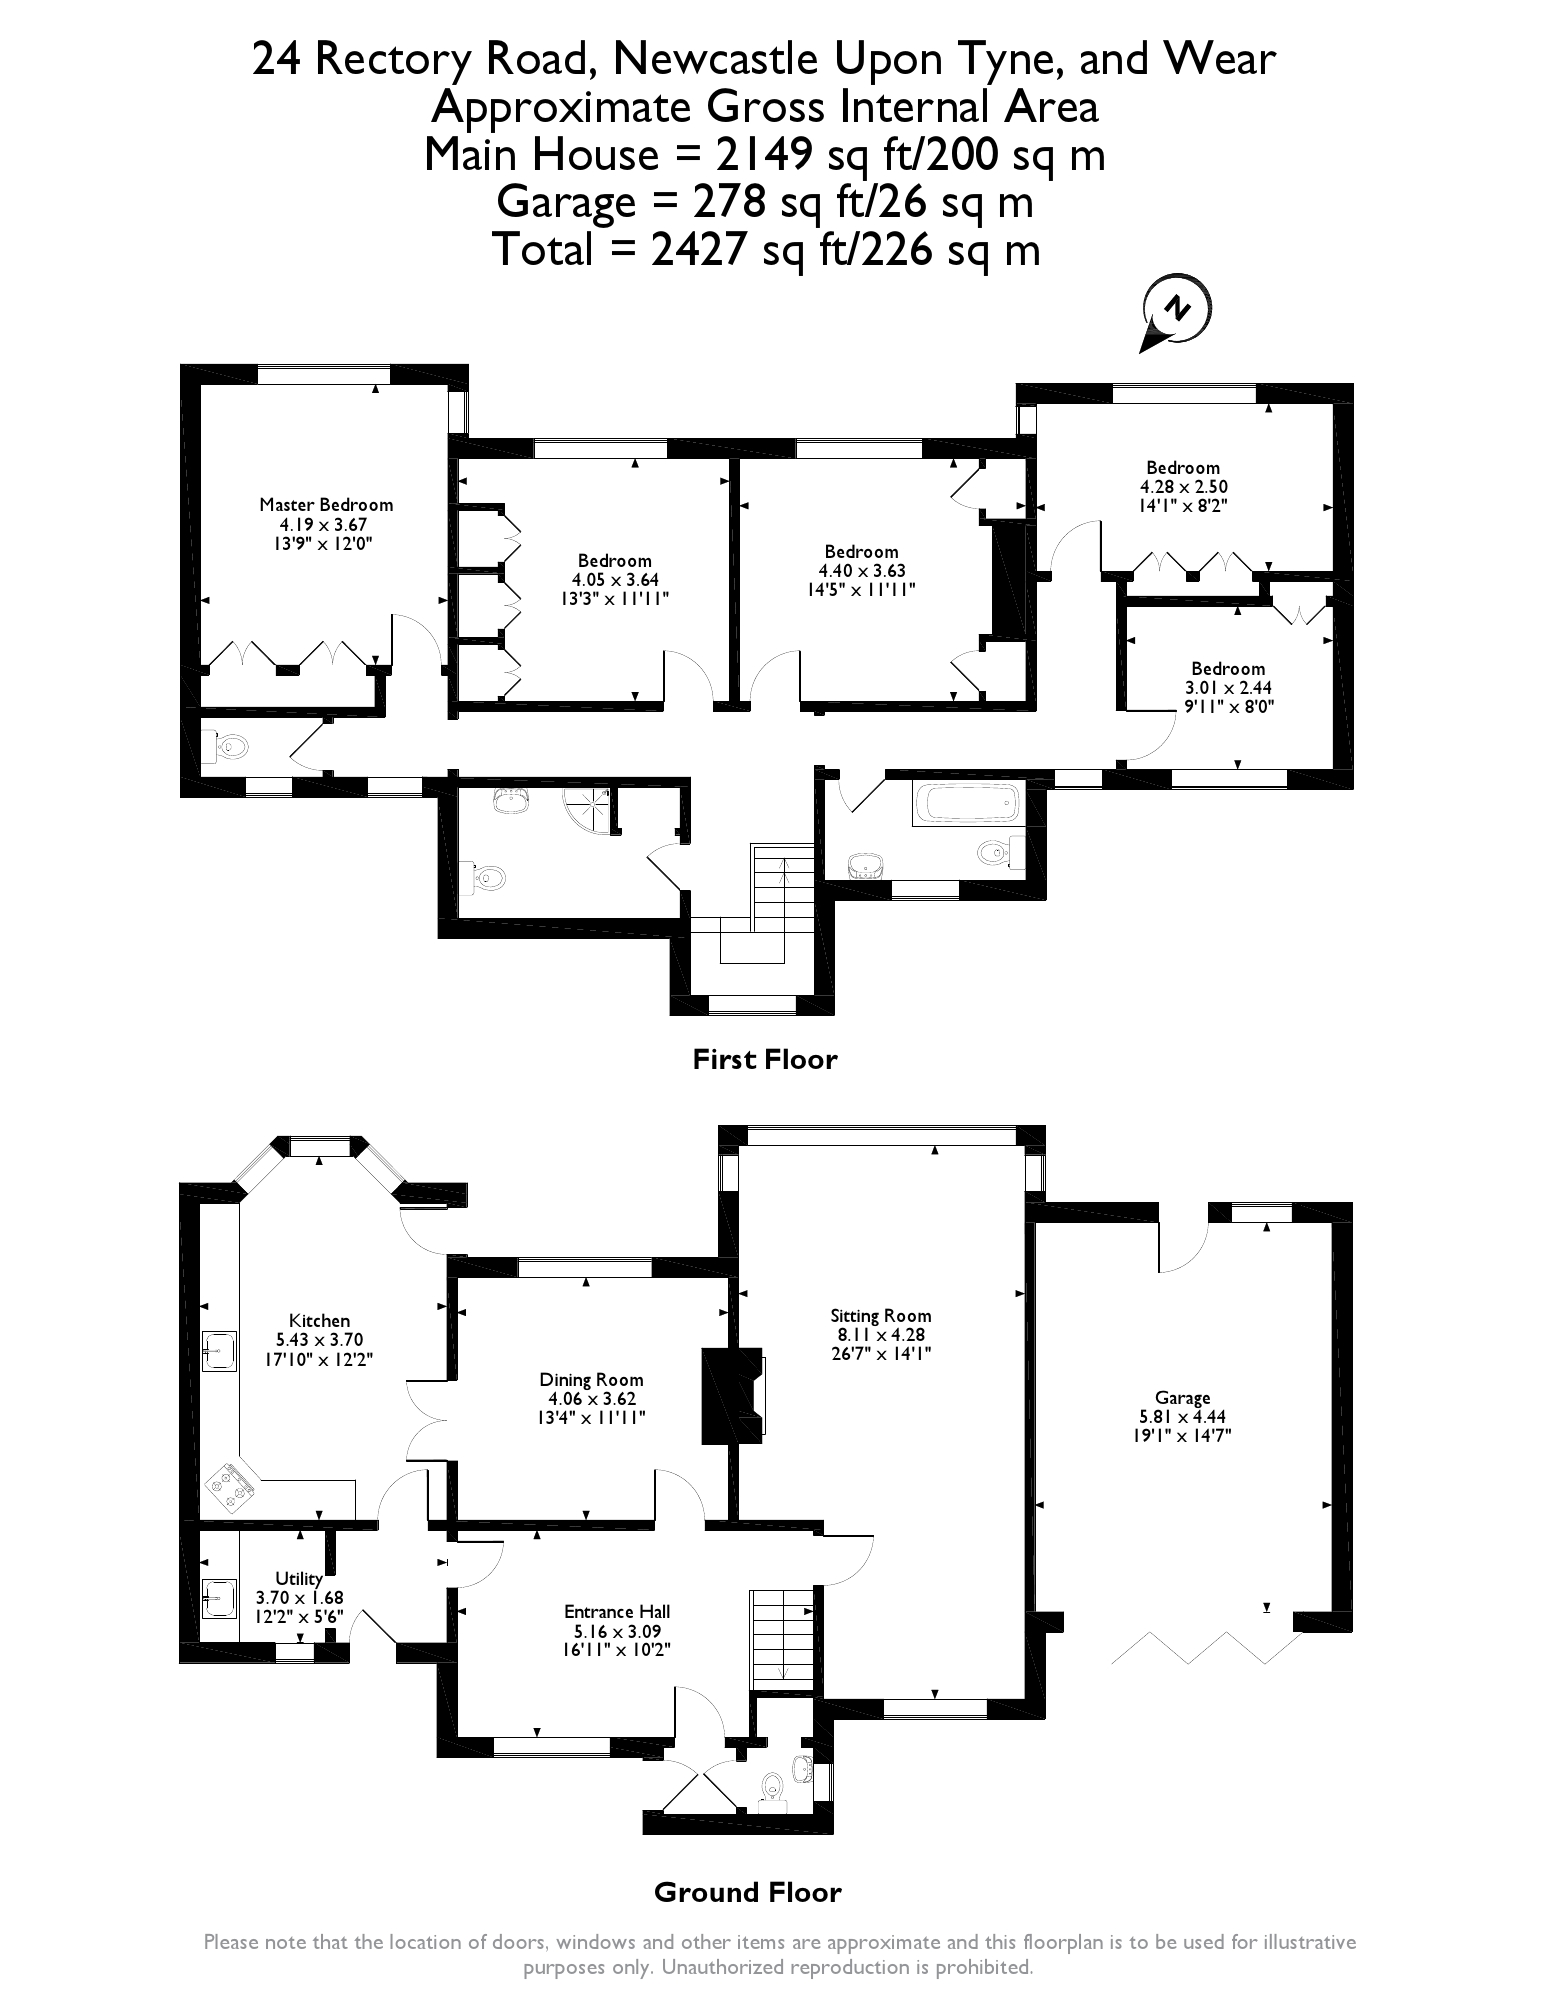 Floorplans for Rectory Road, Gosforth, Newcastle Upon Tyne, NE3